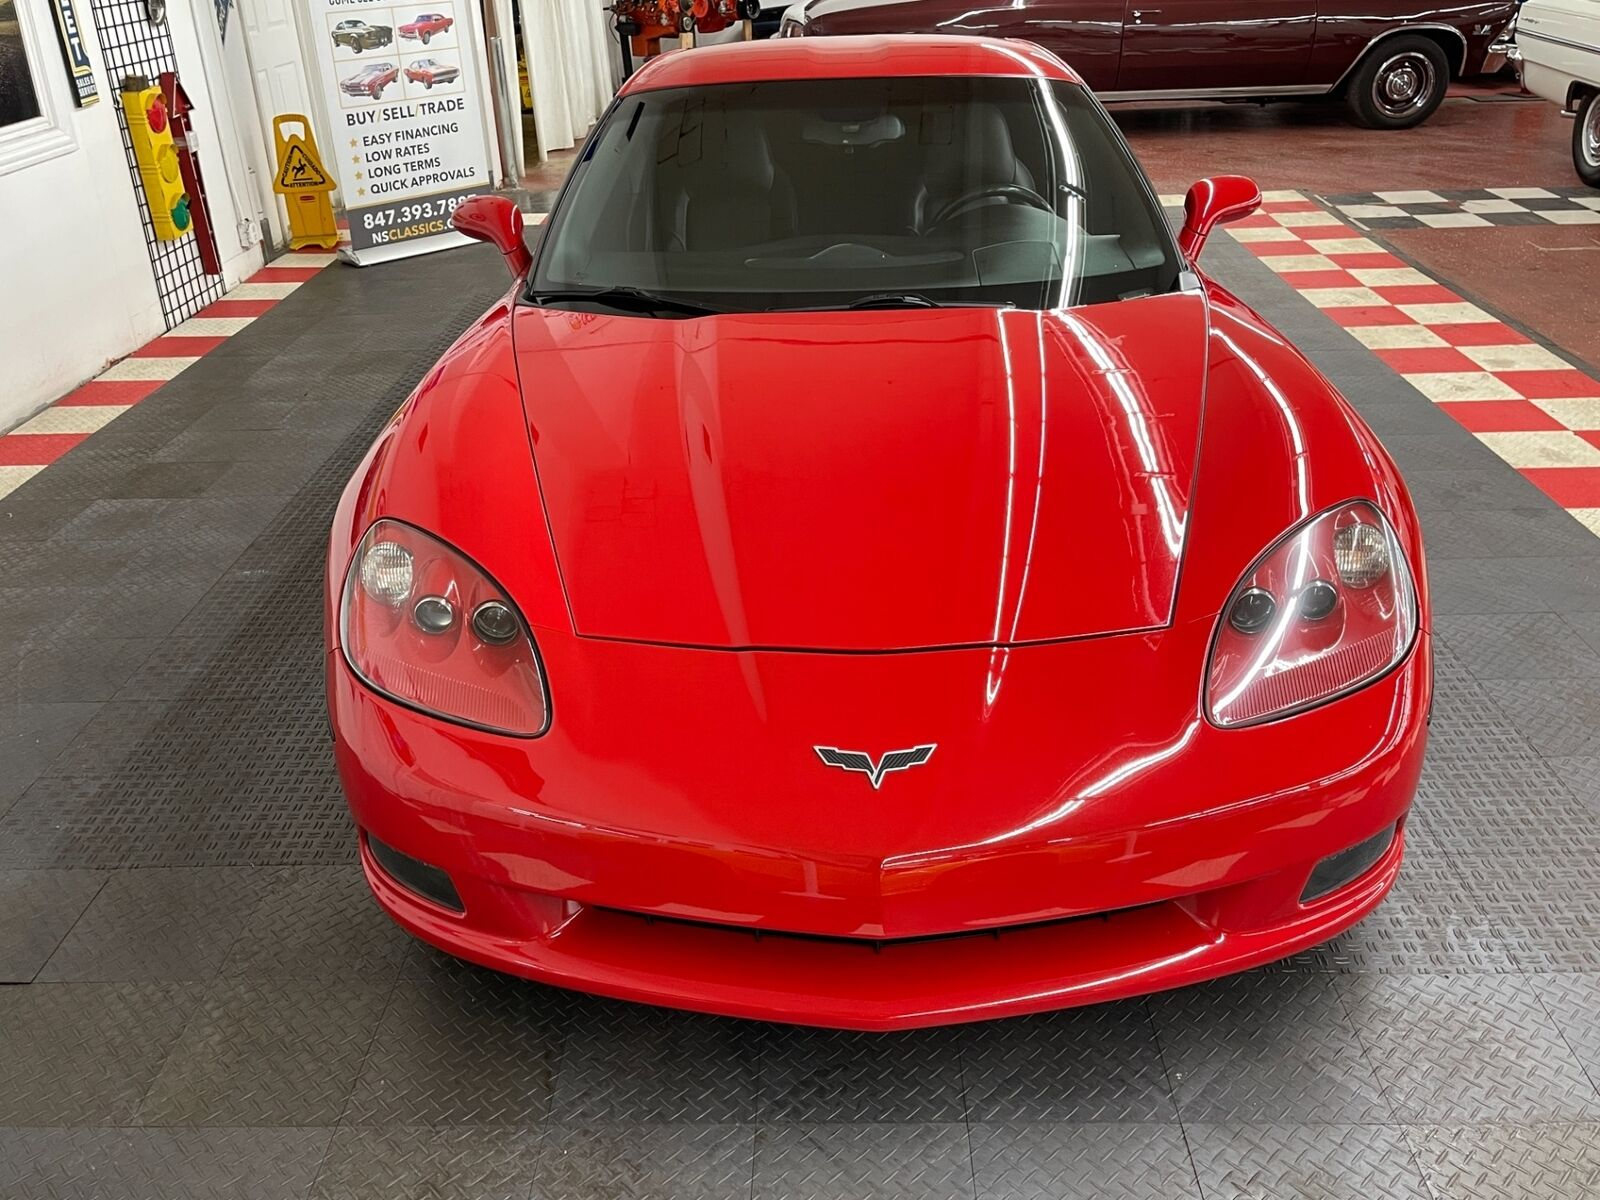 2007 Red Chevrolet Corvette   | C6 Corvette Photo 7